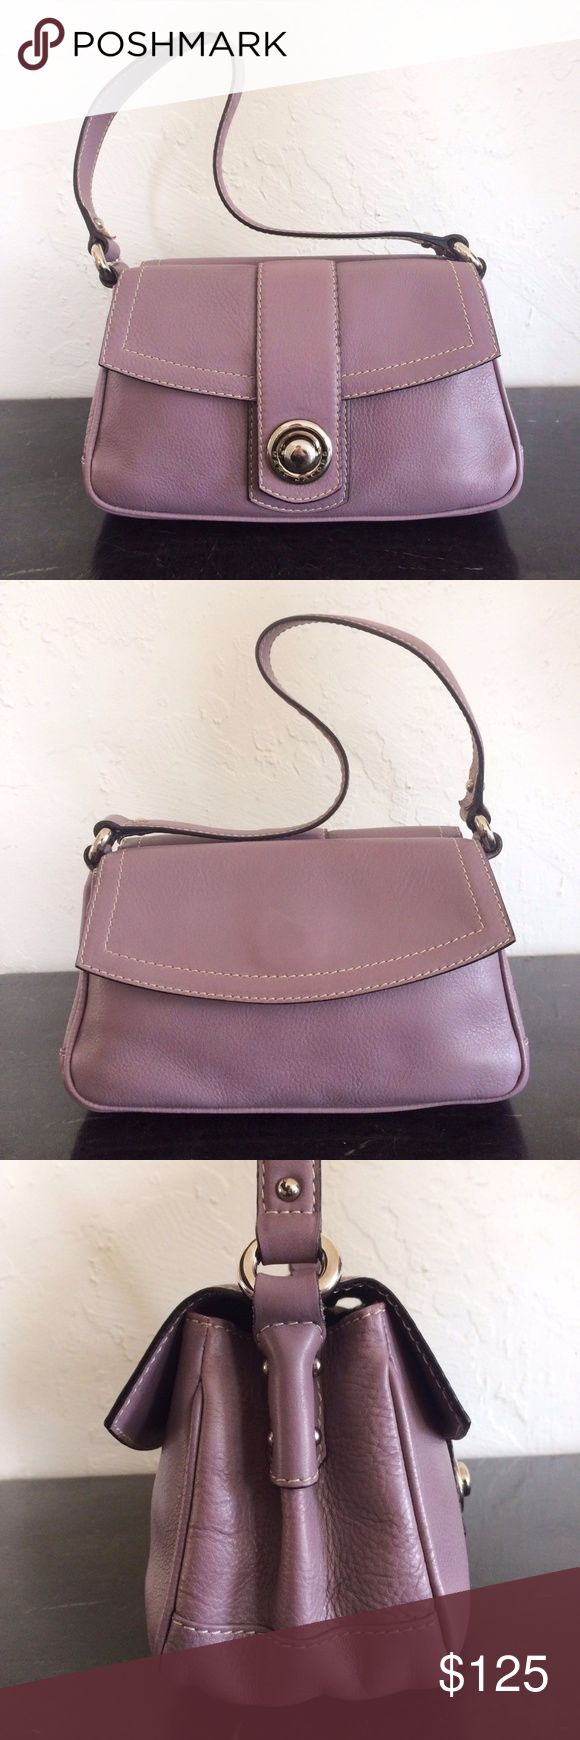 """Marc Jacobs Purple Olivia Suede Lined This is a classic suede lined style from the early Marc Jacobs days. About 10""""W x 6""""H x 3 1/2""""D with a 7 1/2"""" strap drop. The back compartment has a magnetic flap closure, while the front compartment has a push lock closure and one zip pocket. Gently used with minor lining wear. No major flaws. The official color is Washed Raisin and the hardware is silver. Price firm. Marc Jacobs Bags Shoulder Bags"""